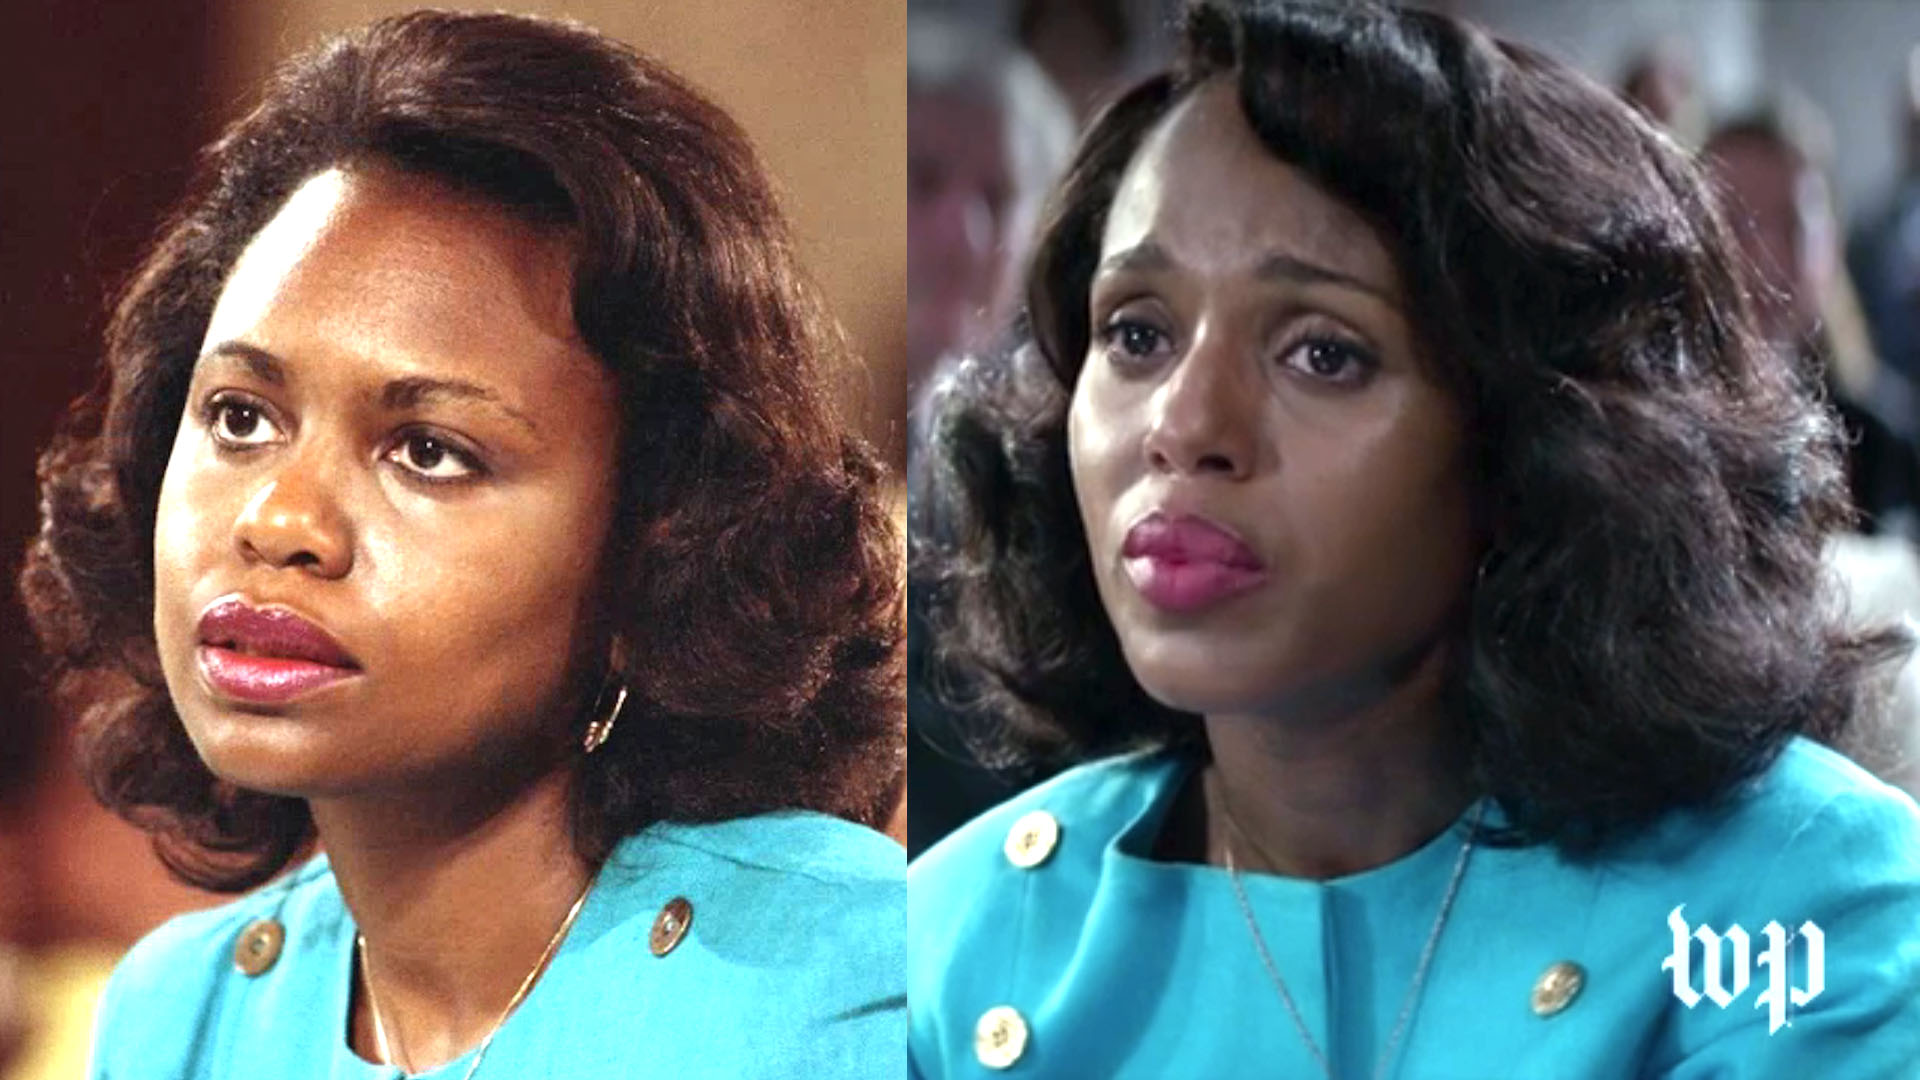 Does HBO's 'Confirmation' favor Anita Hill? Kerry Washington and others say no way.